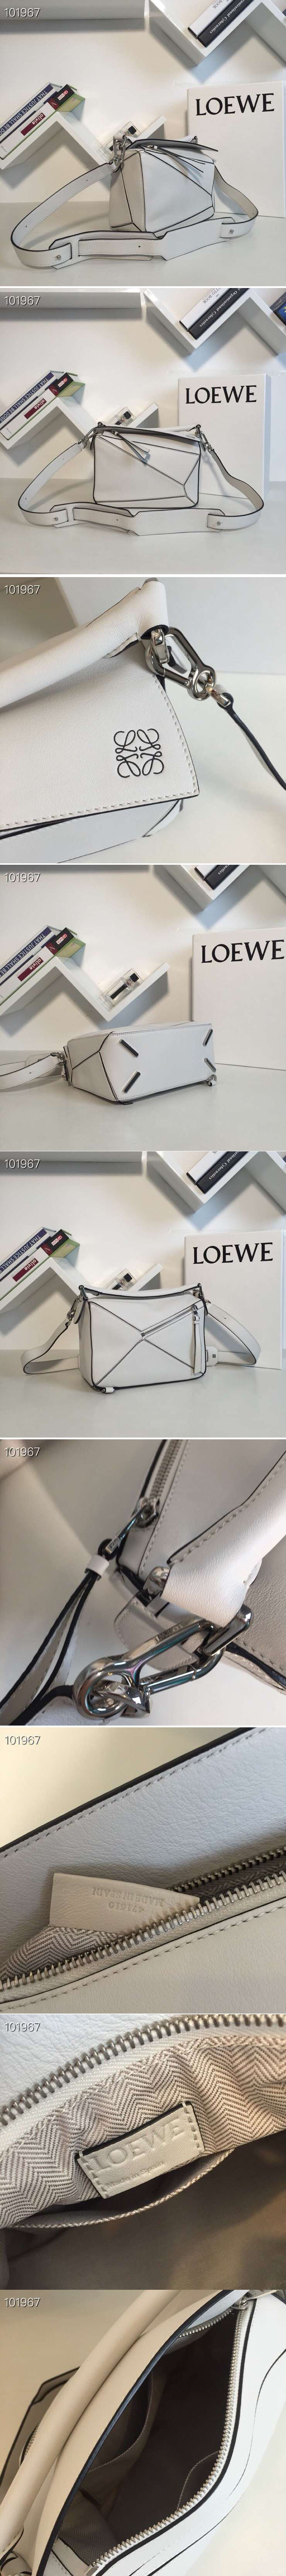 Replica Loewe Puzzle Small Bags Original Calf Leather White